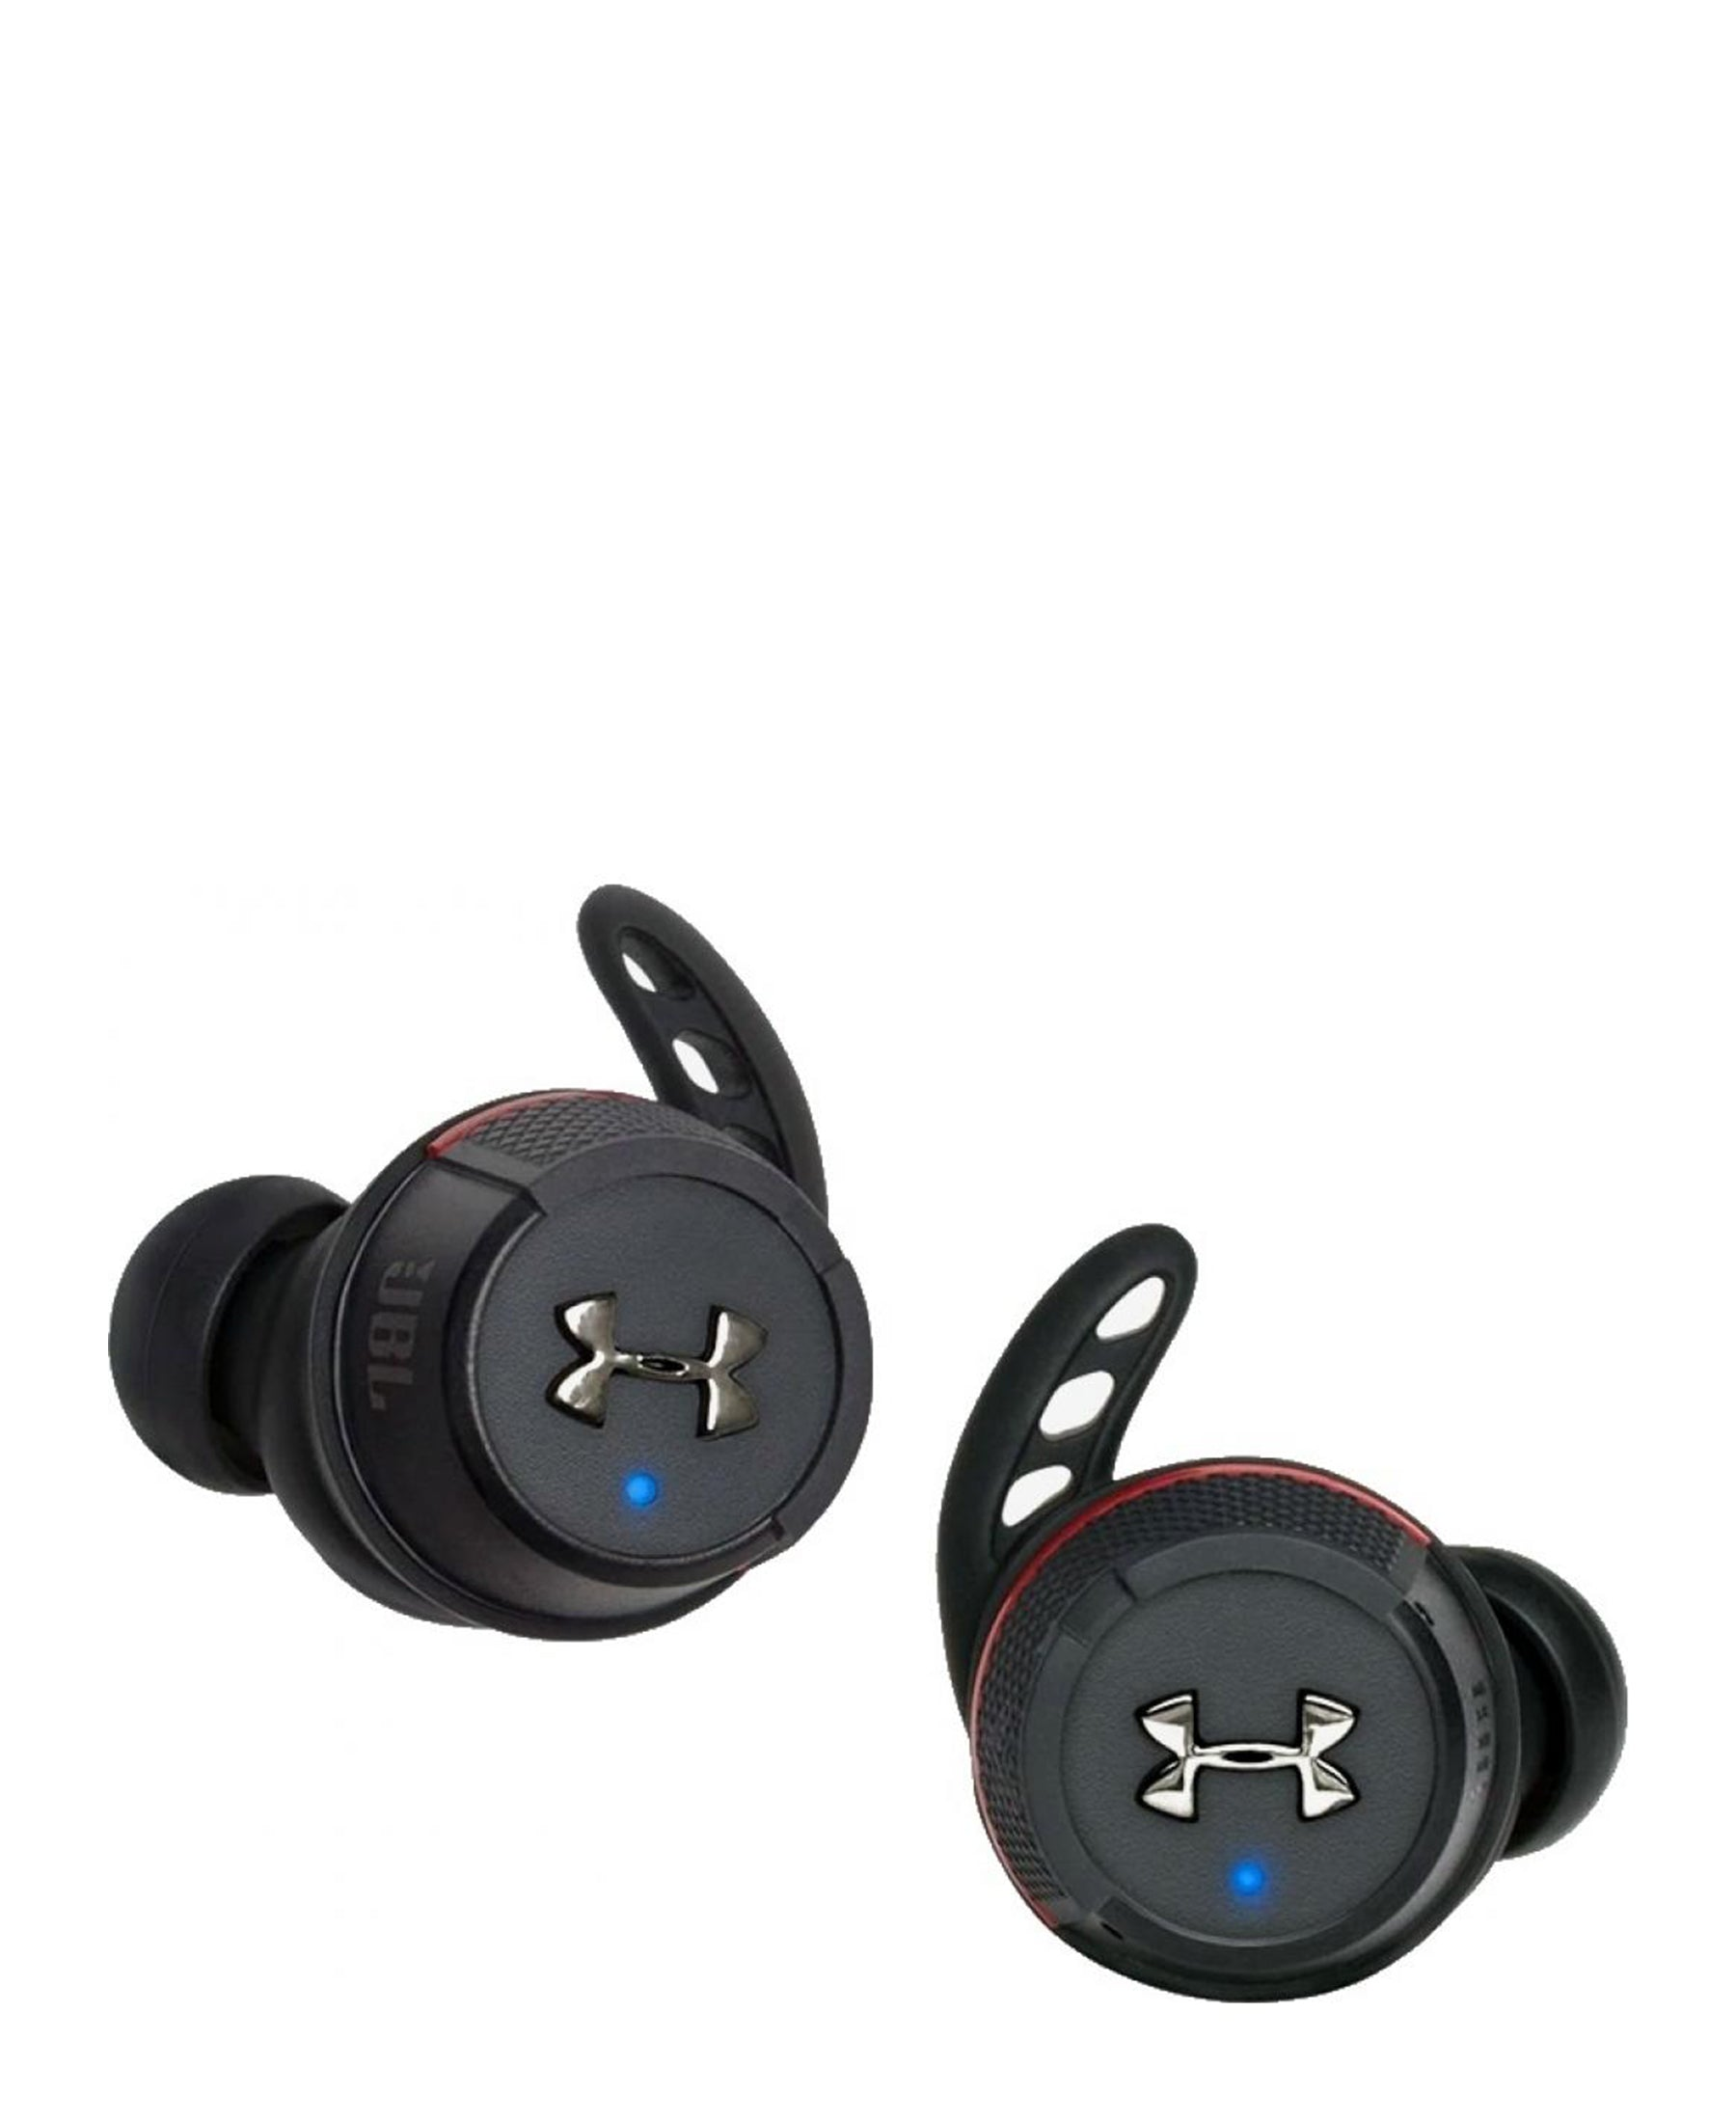 JBL UNDER ARMOUR WIRELESS AIRPODS